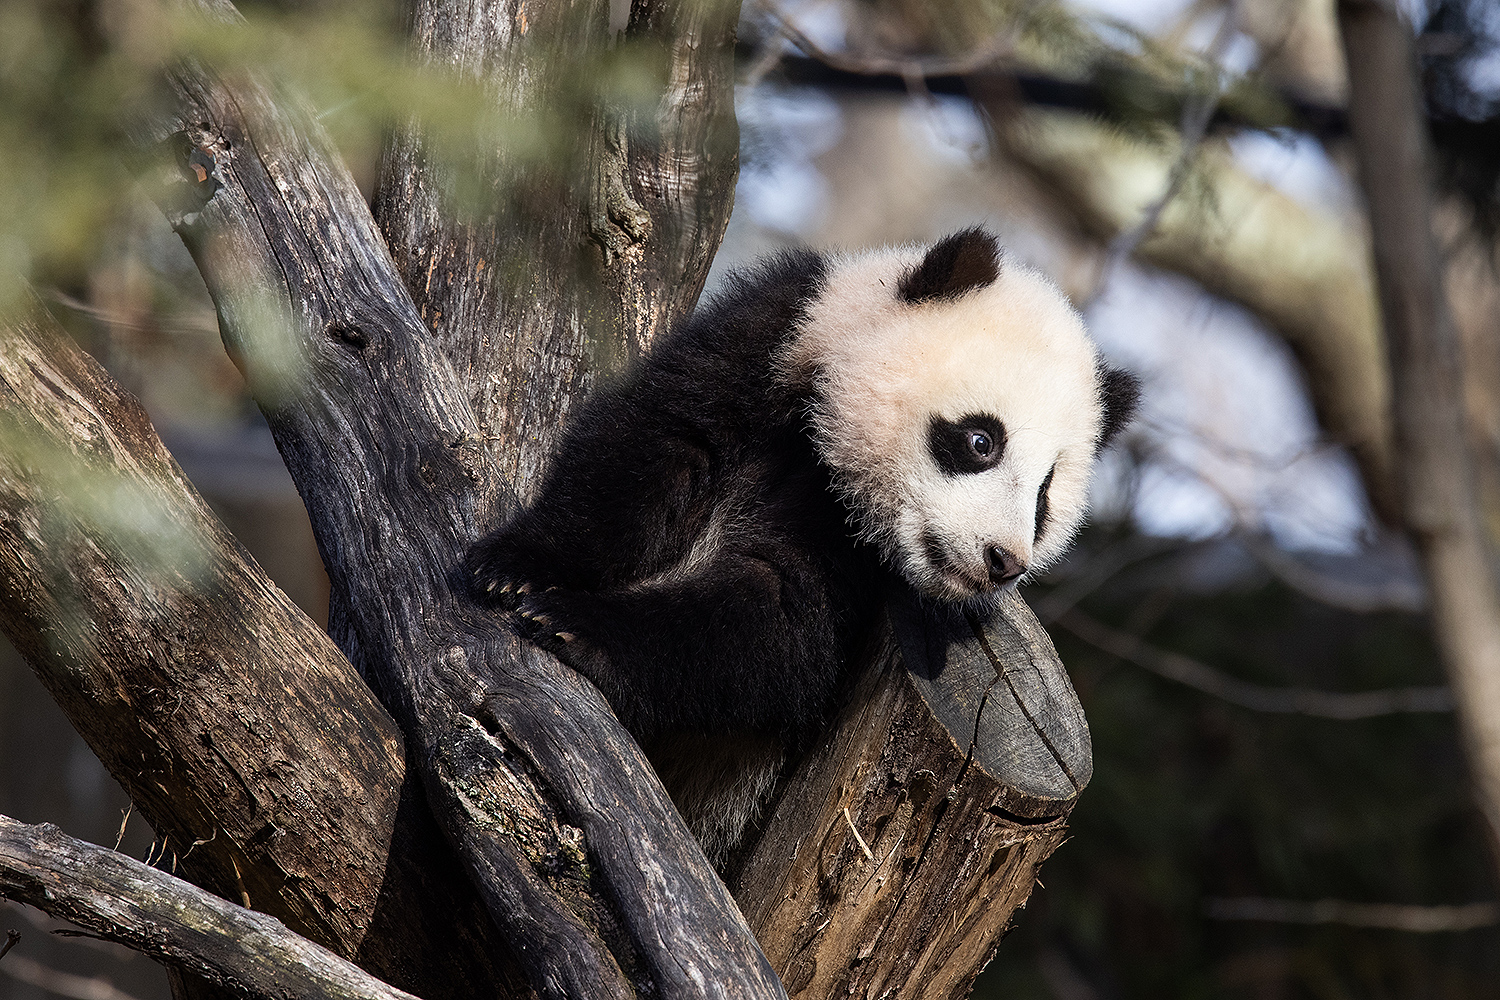 The National Zoo's Panda Cub Is Learning to Climb Trees and Roll Down Hills: 'It's Pretty Cute'